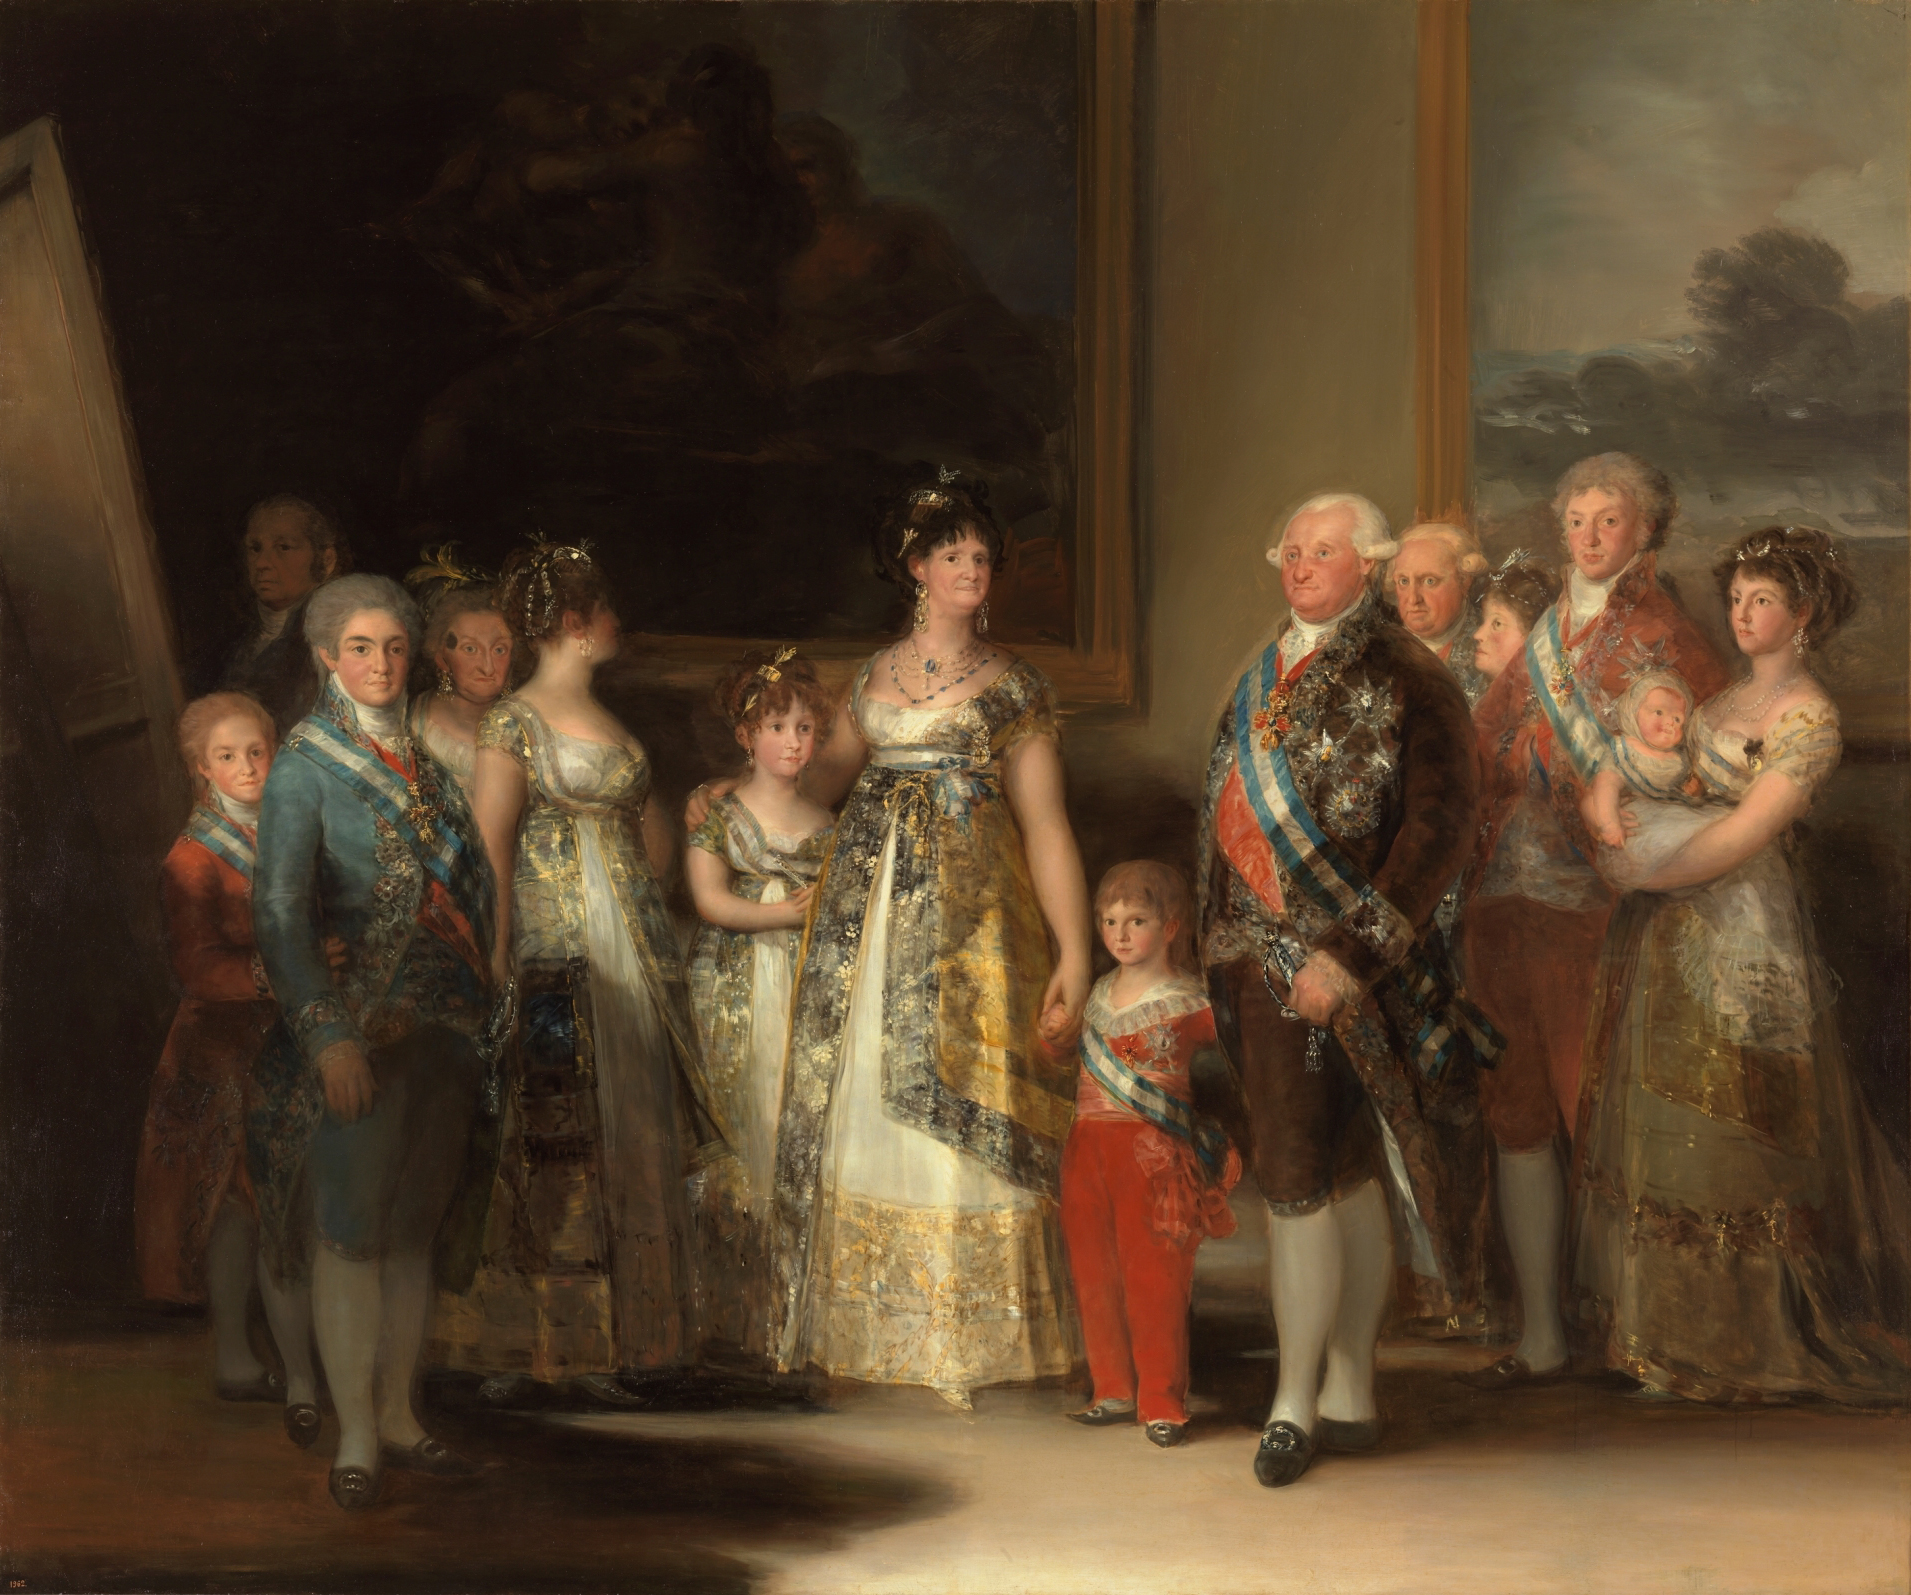 Charles IV of Spain and His Family, Francisco Goya's painting